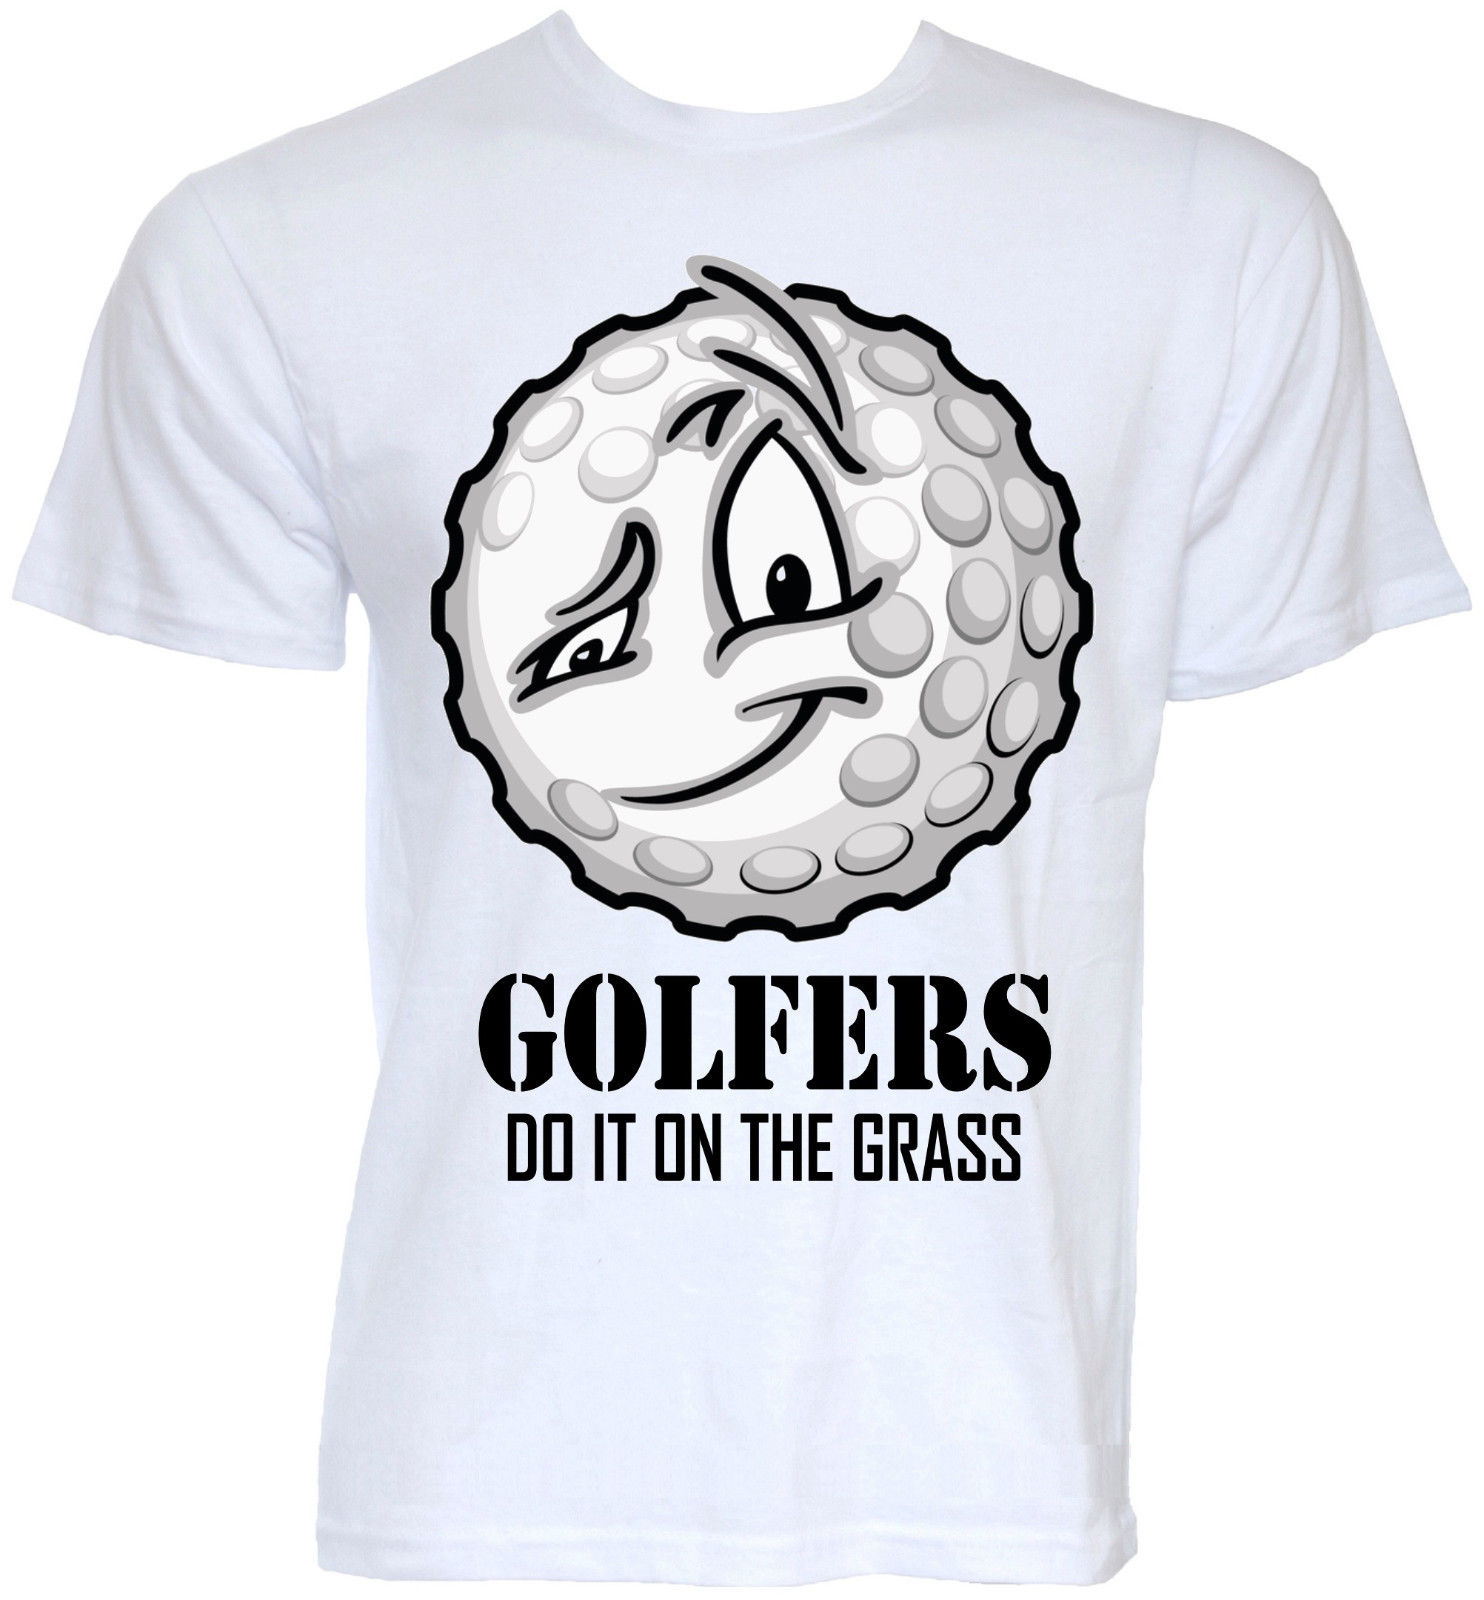 MENS FUNNY NOVELTY JOKE GOLFER BALLS SLOGAN GOLFER GOLFING RUDE T-SHIRTS GIFTS O Neck T Shirt Short Sleeve Top Tee